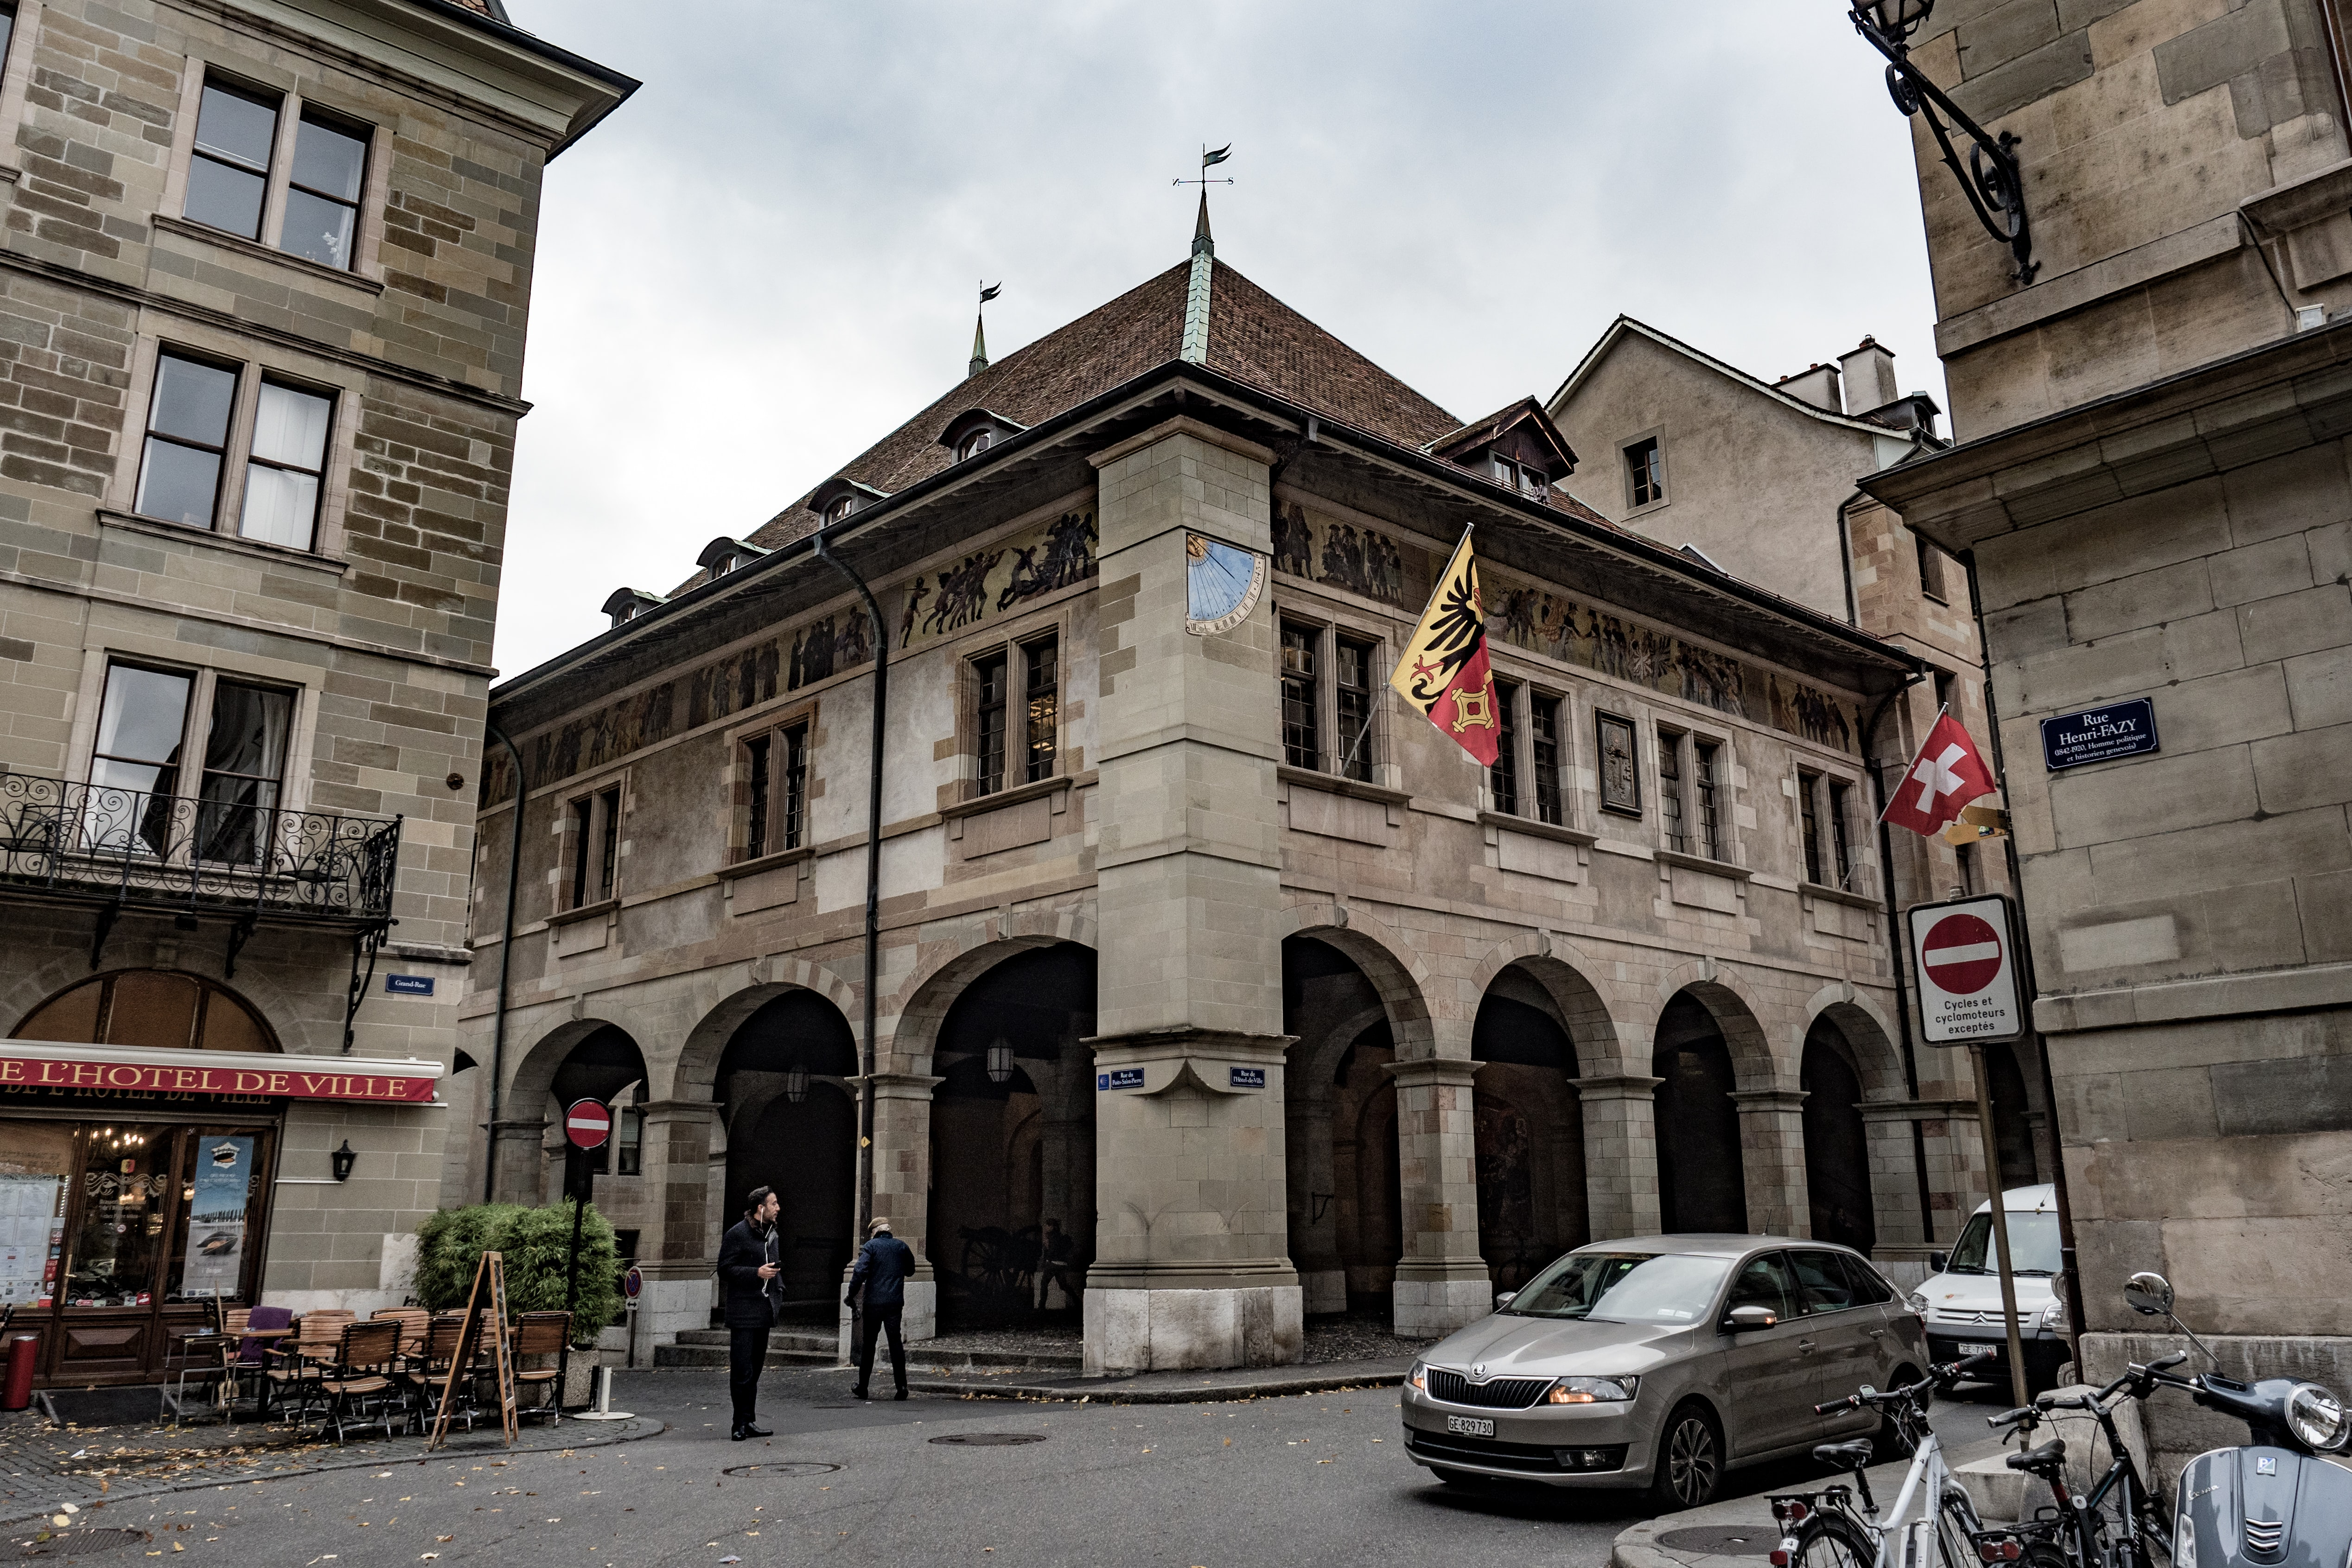 Dispatches: Public Clocks And Sundials In Geneva (Including That Church Clock Rolex Has Been Winding For 77 Years) Dispatches: Public Clocks And Sundials In Geneva (Including That Church Clock Rolex Has Been Winding For 77 Years) PB064030